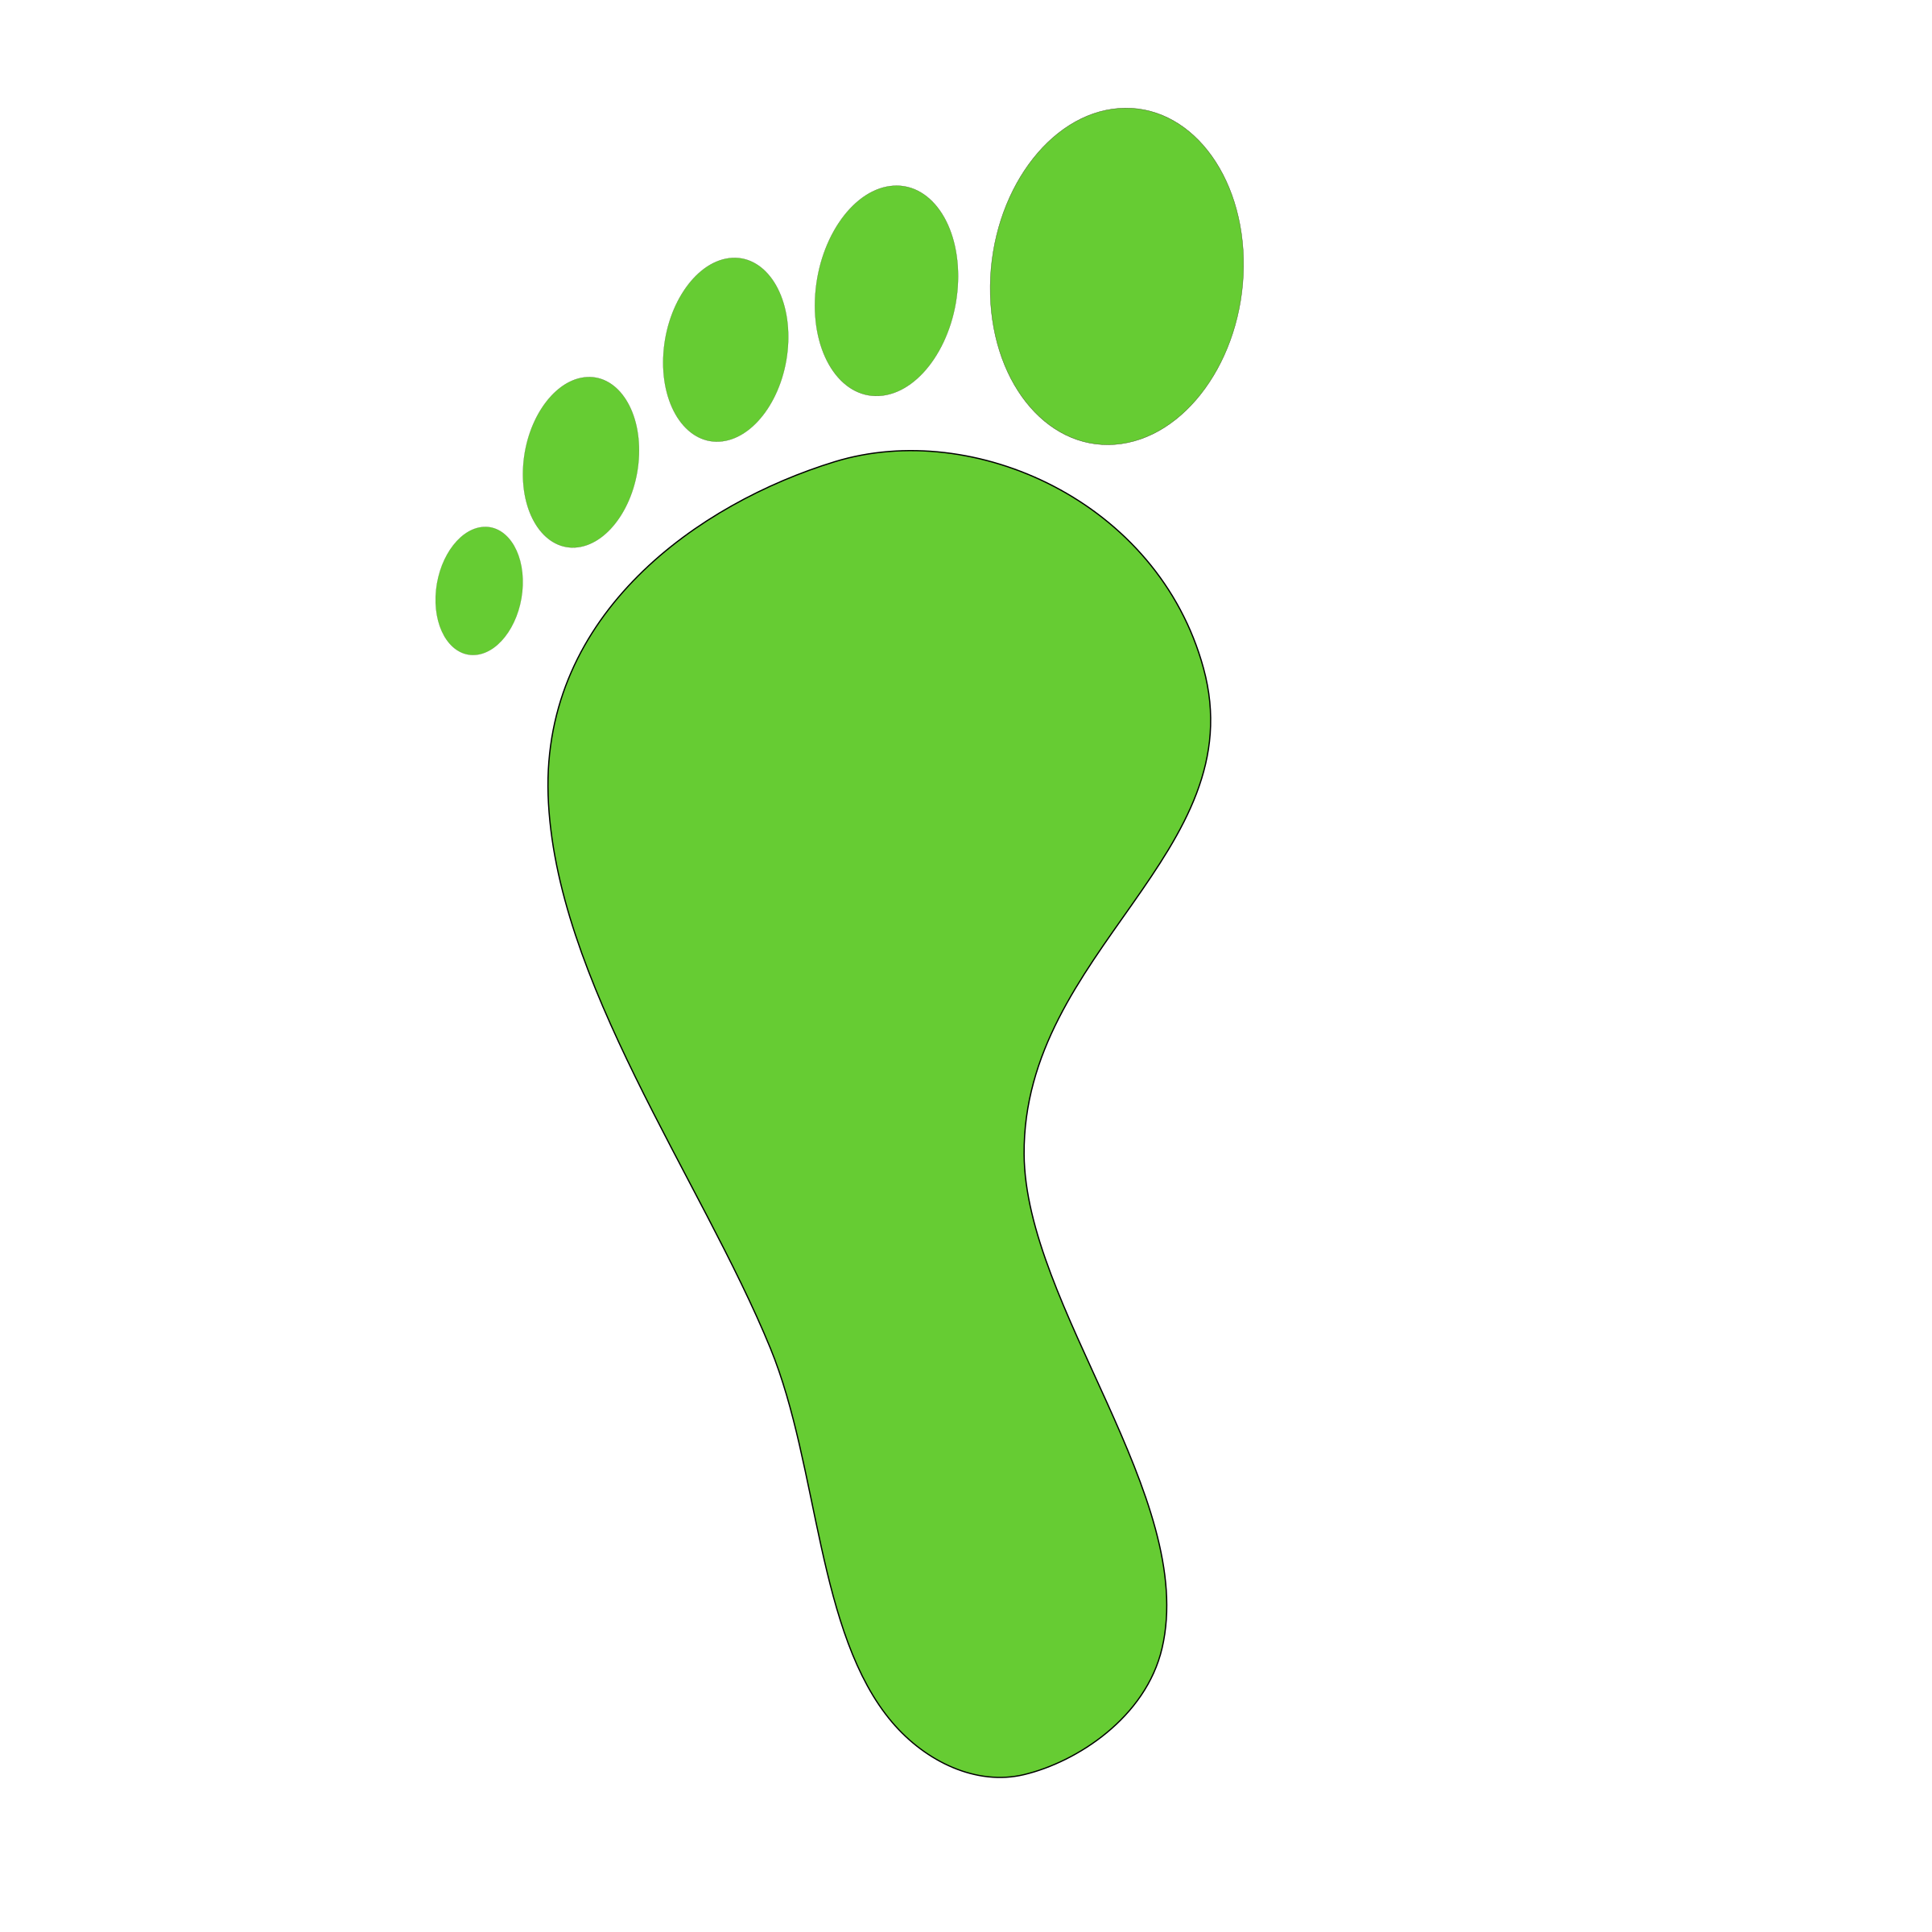 green foot print by netalloy